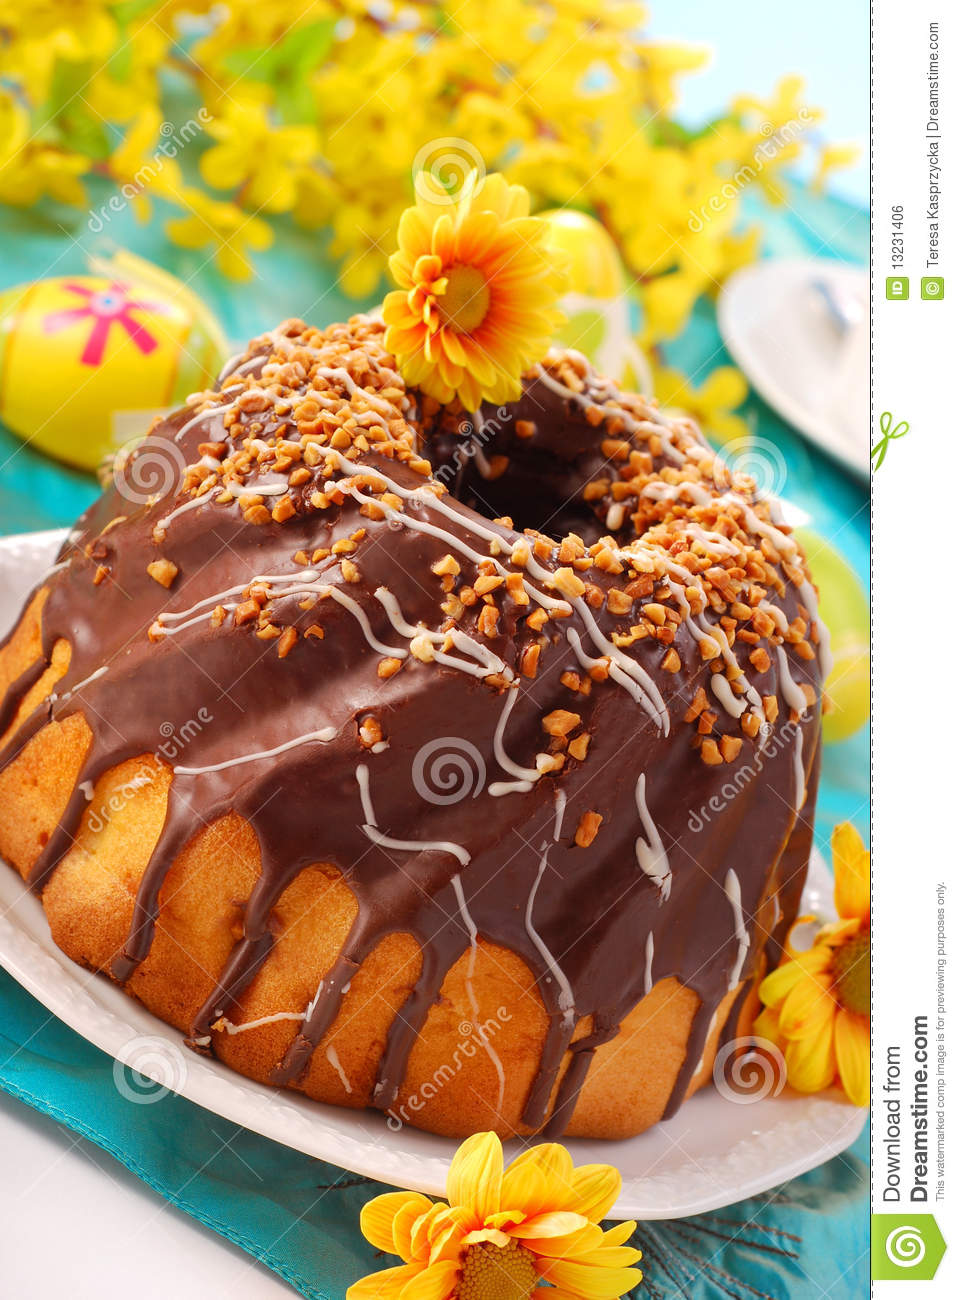 Chocolate Ring Cake For Easter Royalty Free Stock Image - Image ...